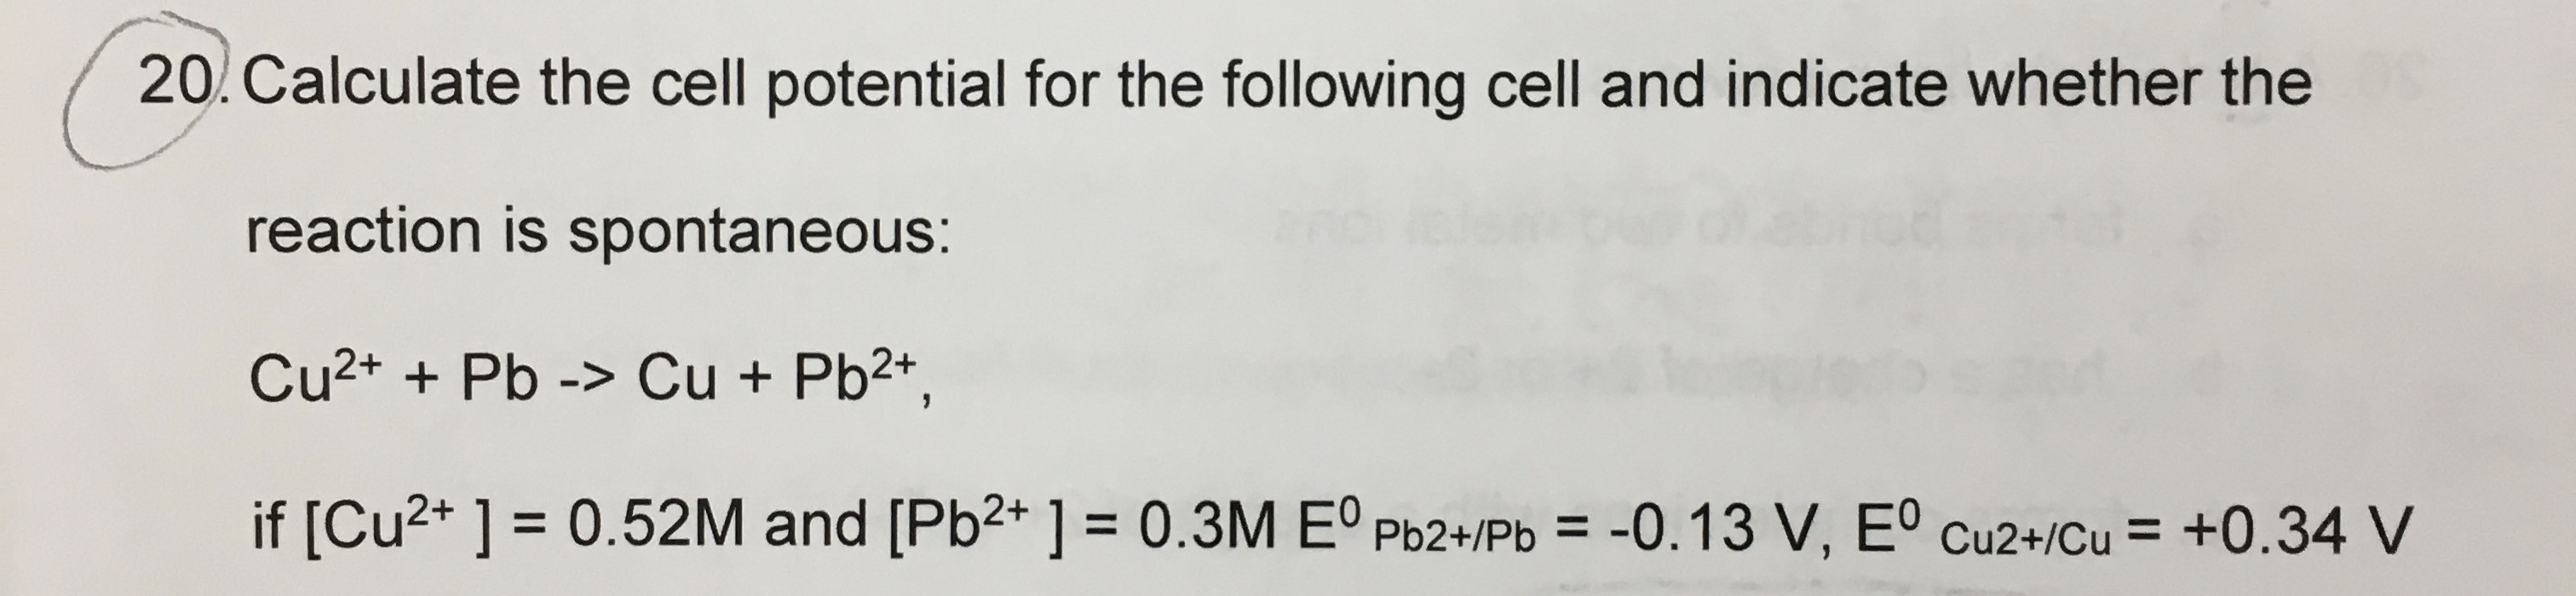 20. Calculate the cell potential for the following cell and indicate whether the reaction is spontaneous: Cu2+ + Pb -> Cu + Pb2+, if [Cu2+ ] = 0.52M and [Pb2* ] = 0.3M Eº Pb2+/Pb = -0.13 V, Eº cu2+/Cu = +0.34 V %D %3D %3D